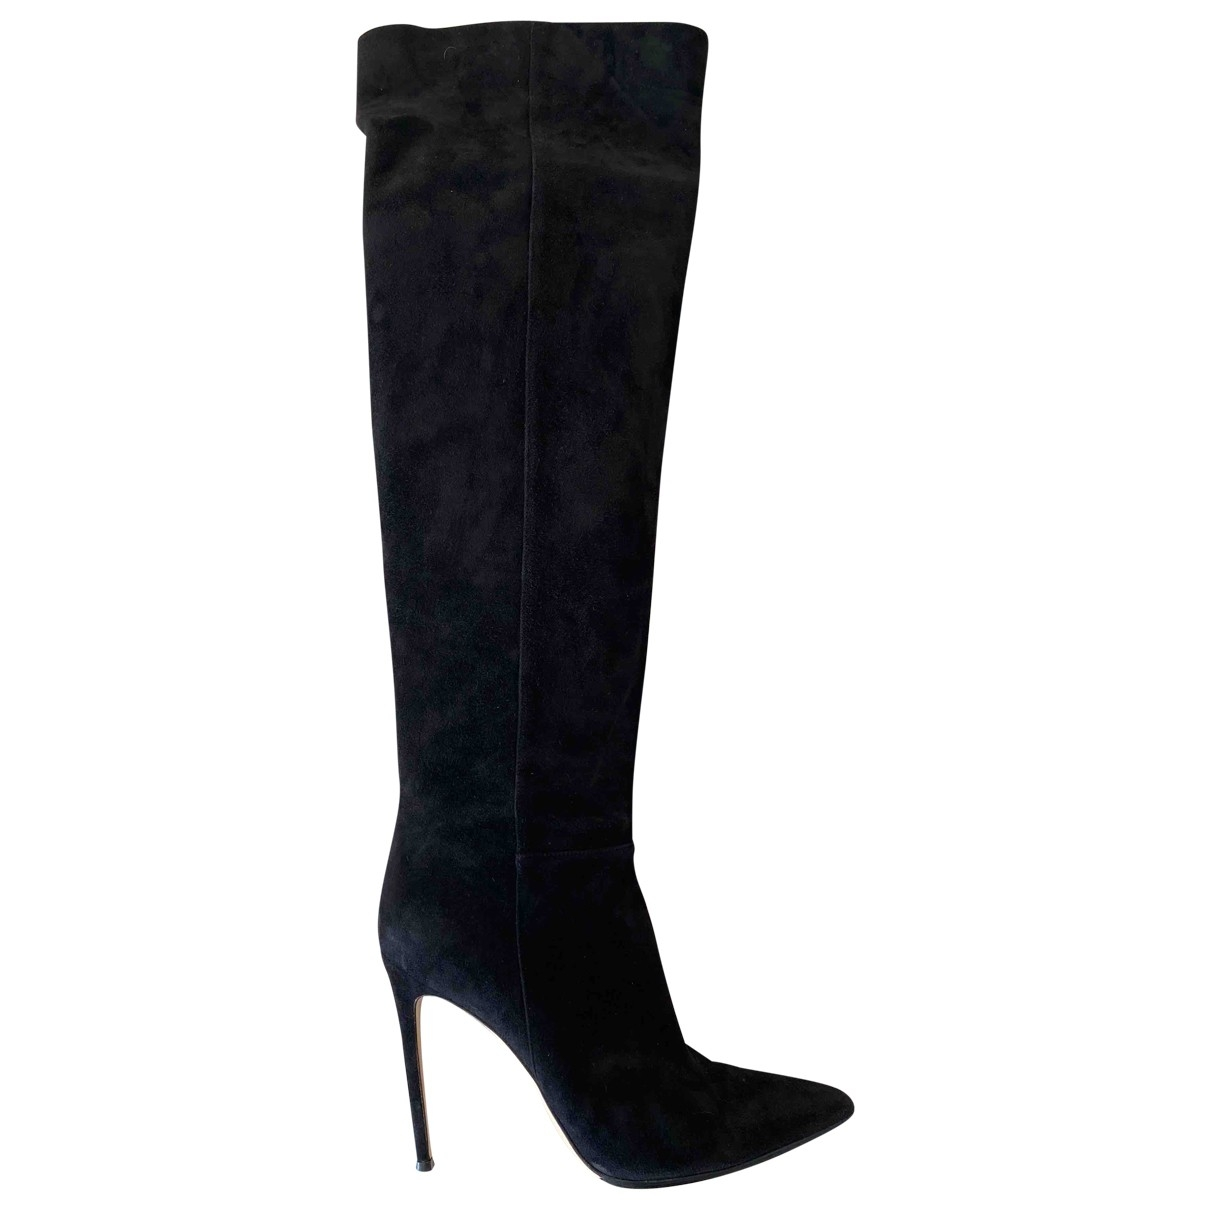 Gianvito Rossi \N Black Suede Boots for Women 40 EU